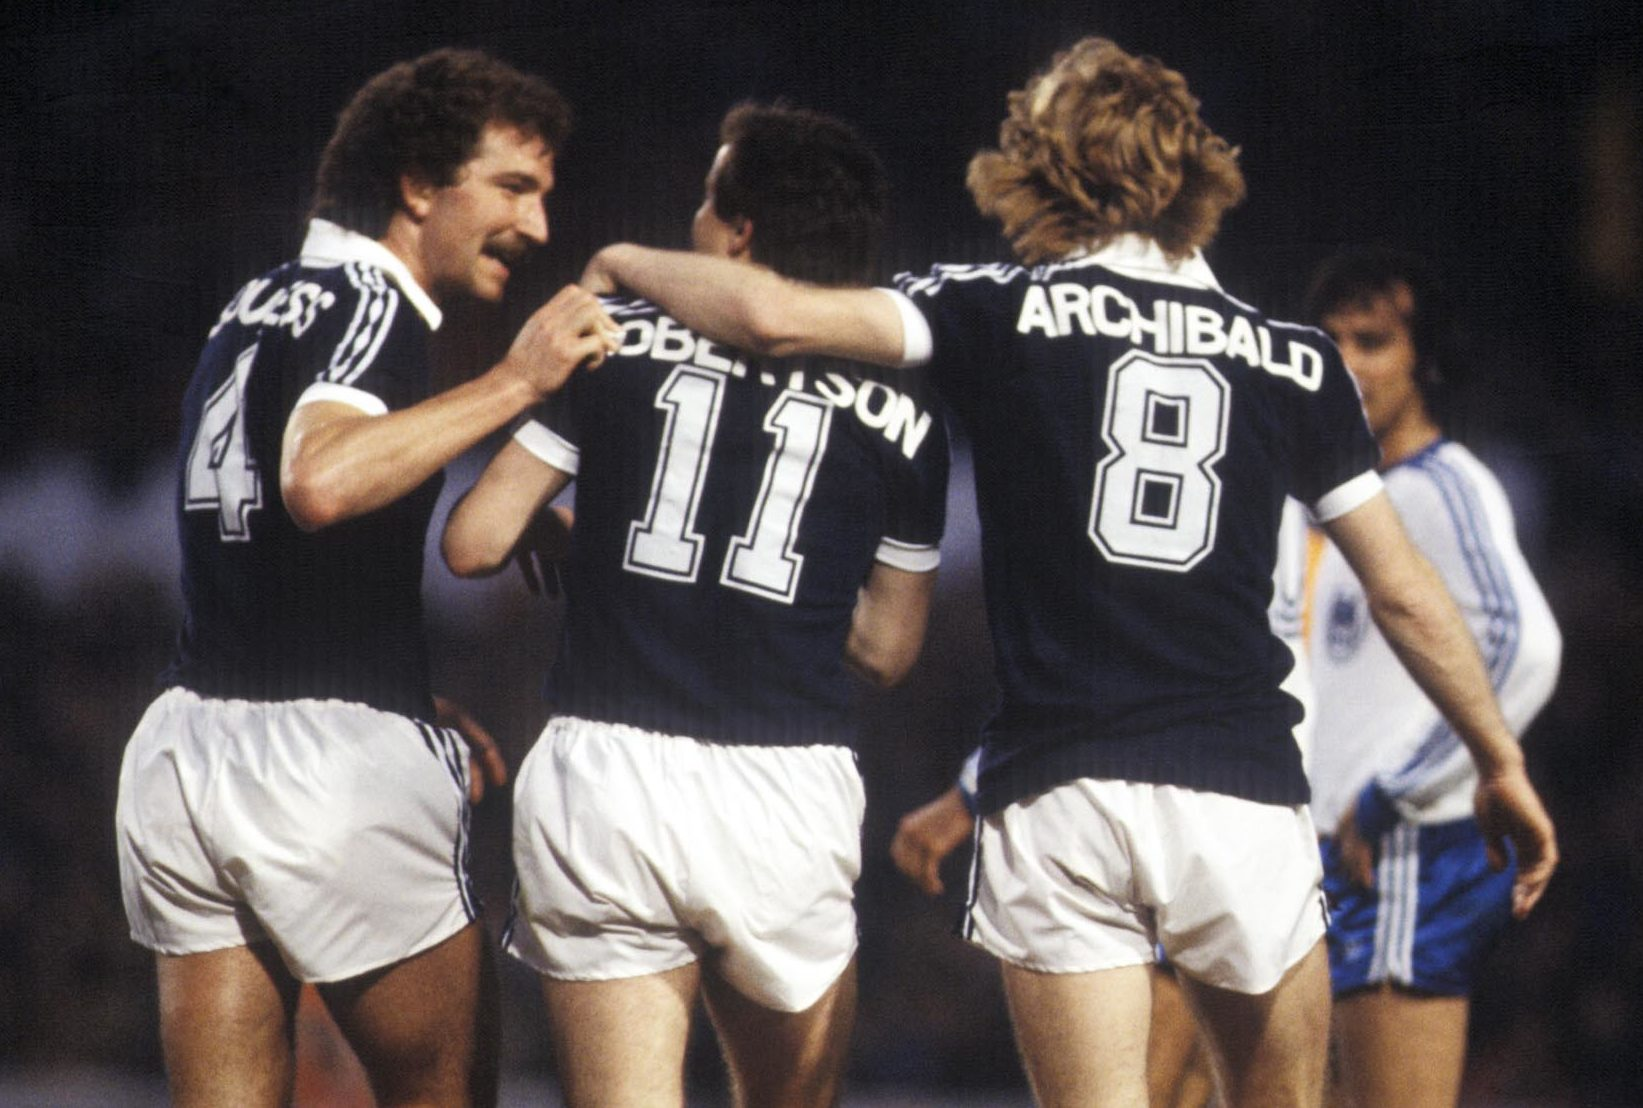 Scotland winger John Robertson (centre) joins team-mates Graeme Souness (left) and Steve Archibald in celebration after his first goal.